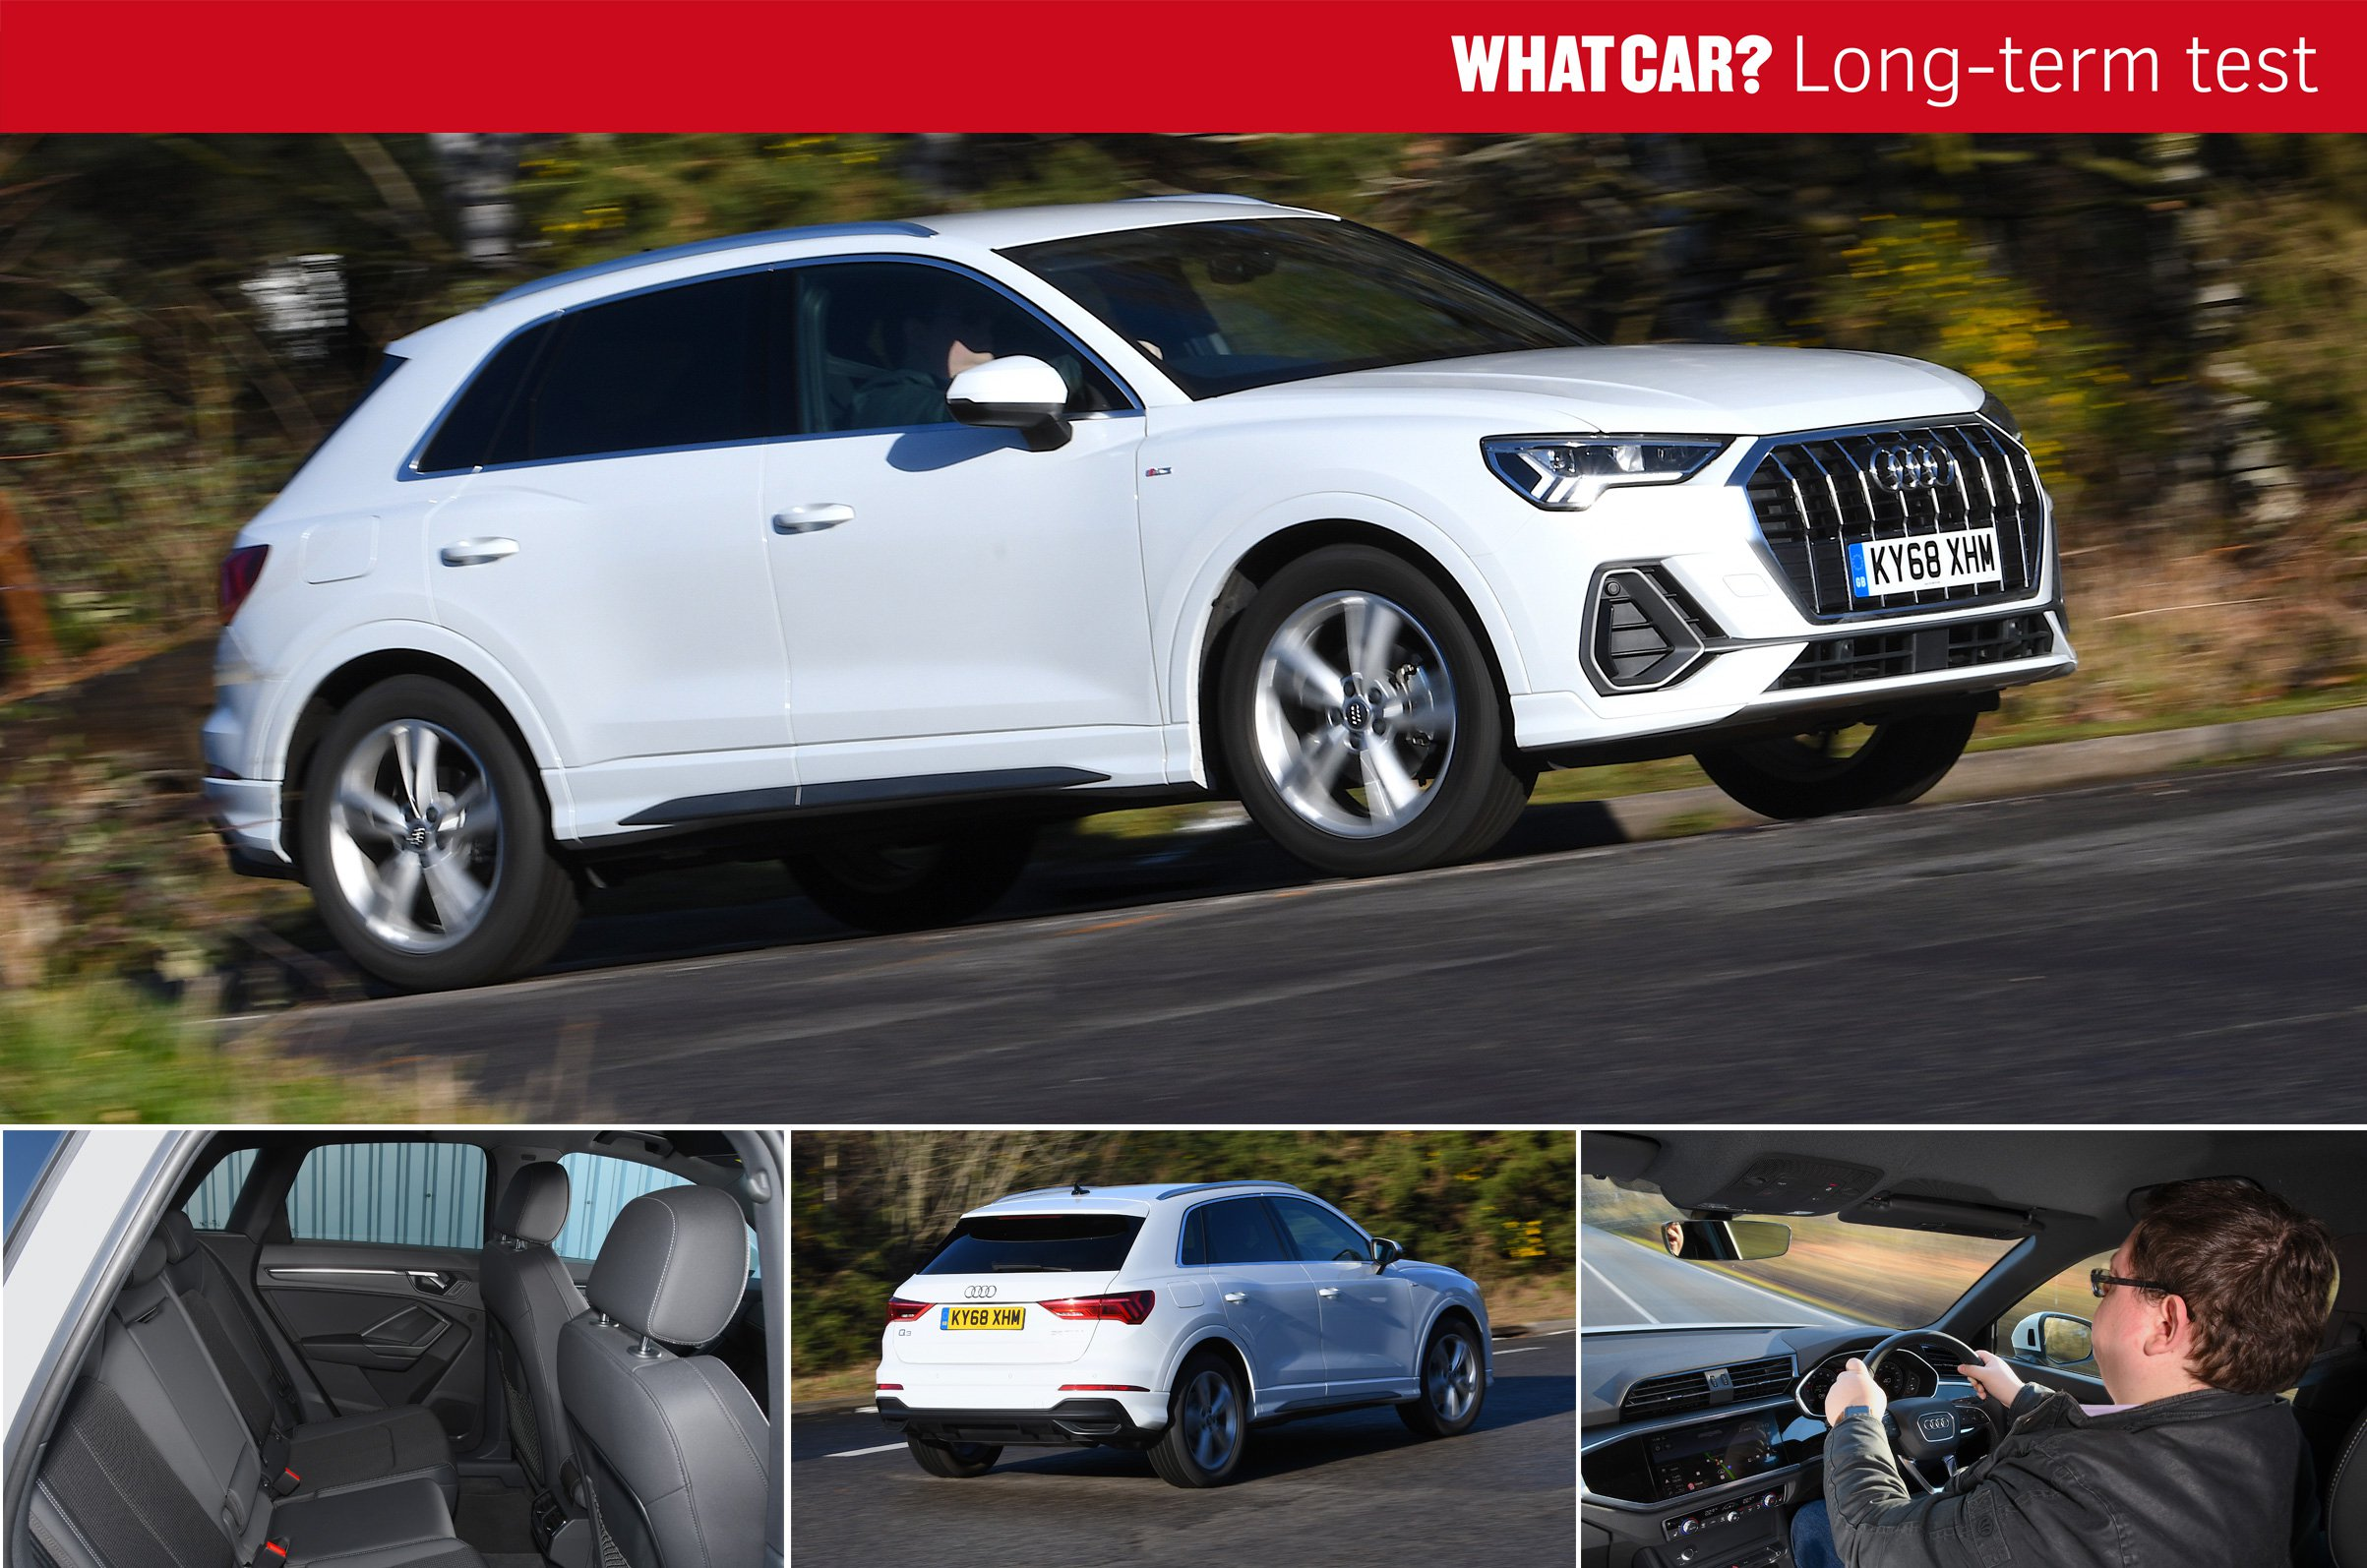 Audi Q3 long-term test